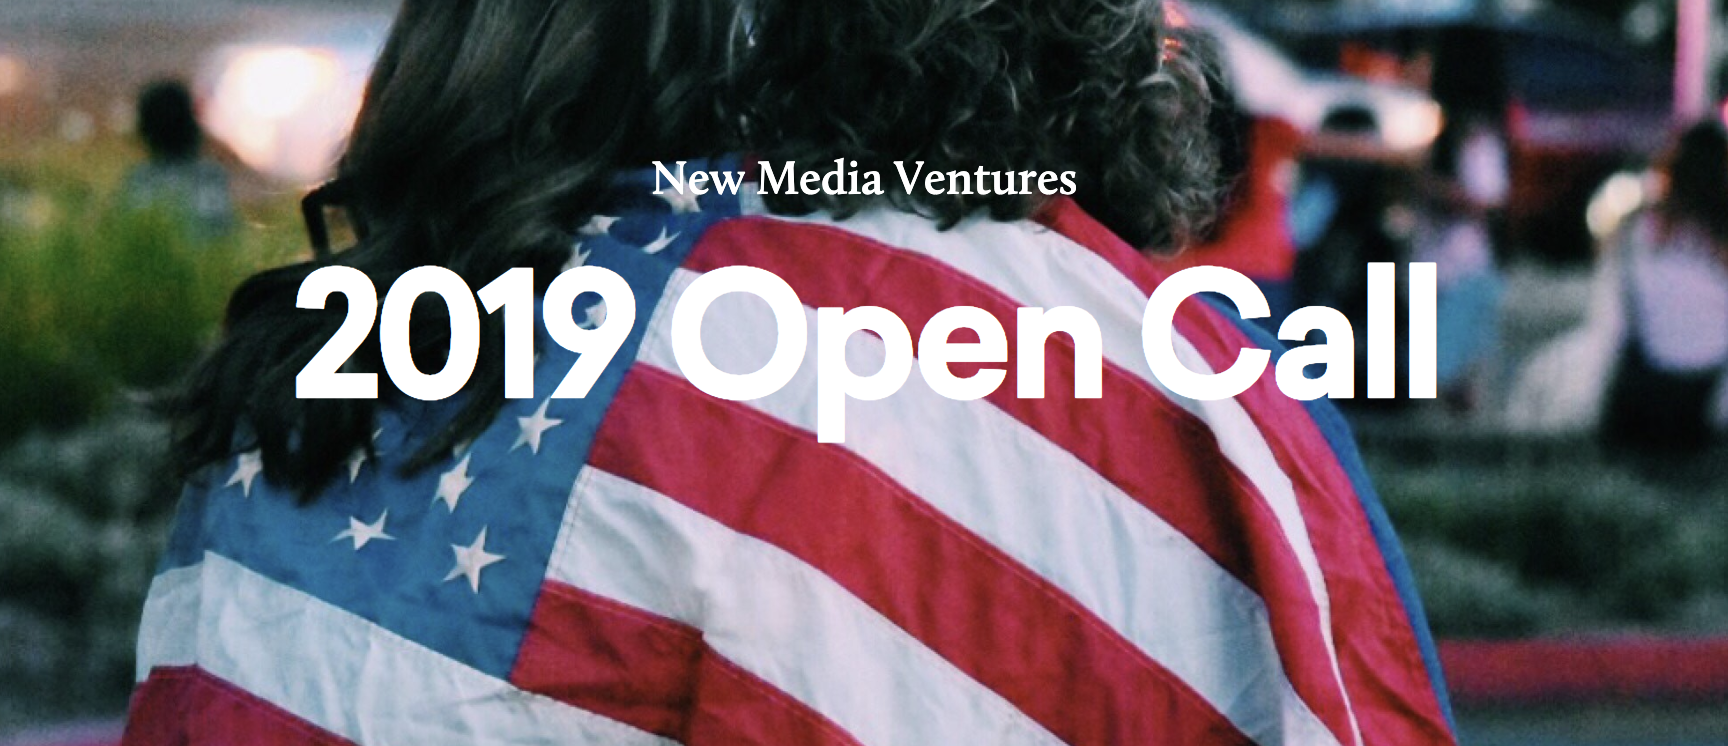 New Media Ventures / 2019 Open Call